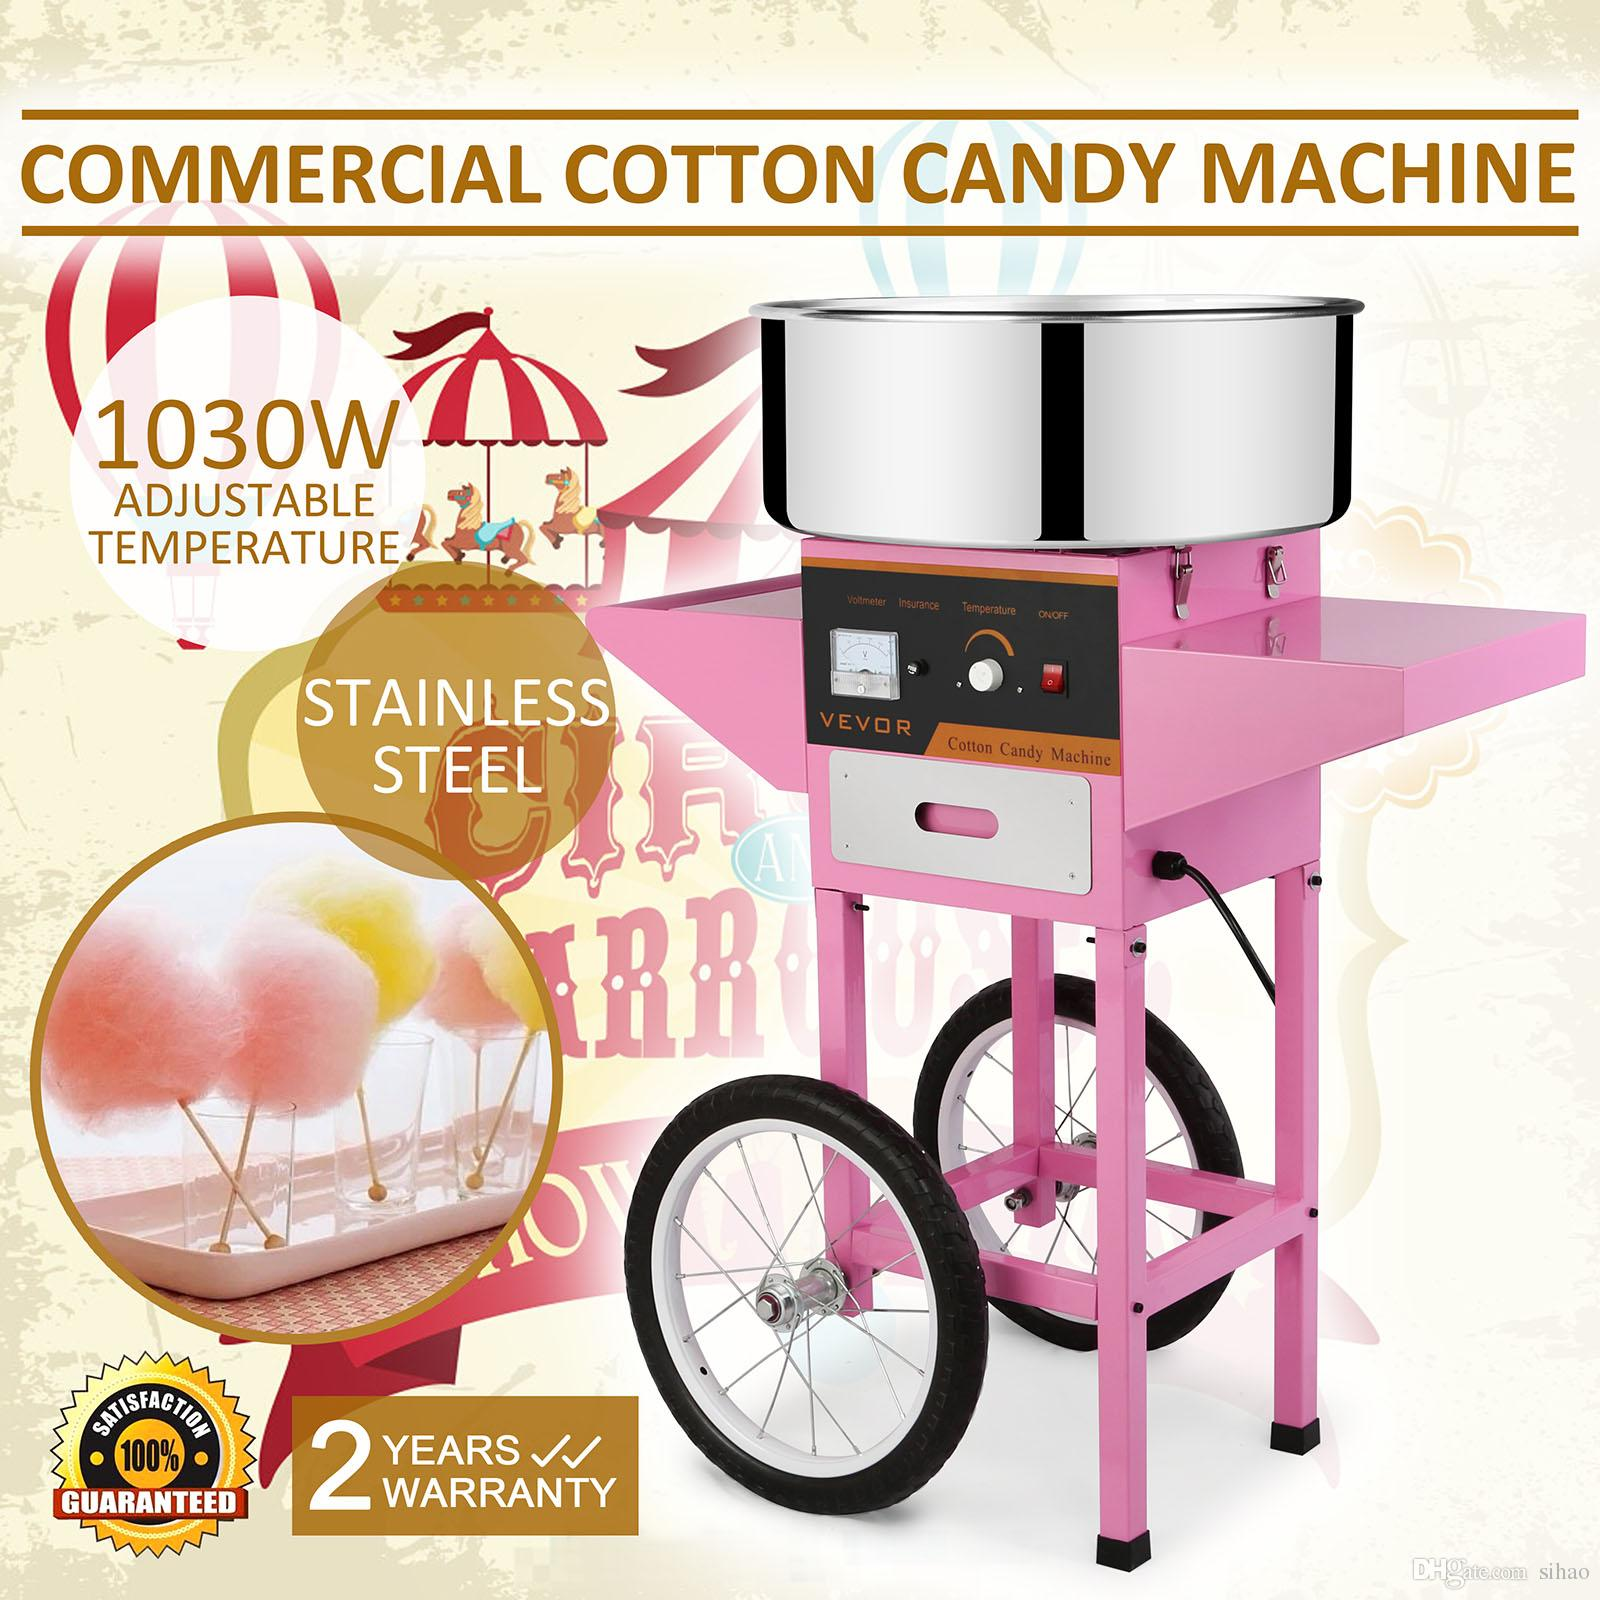 2019 COTTON CANDY MACHINE + CART Brand New Commercial ...